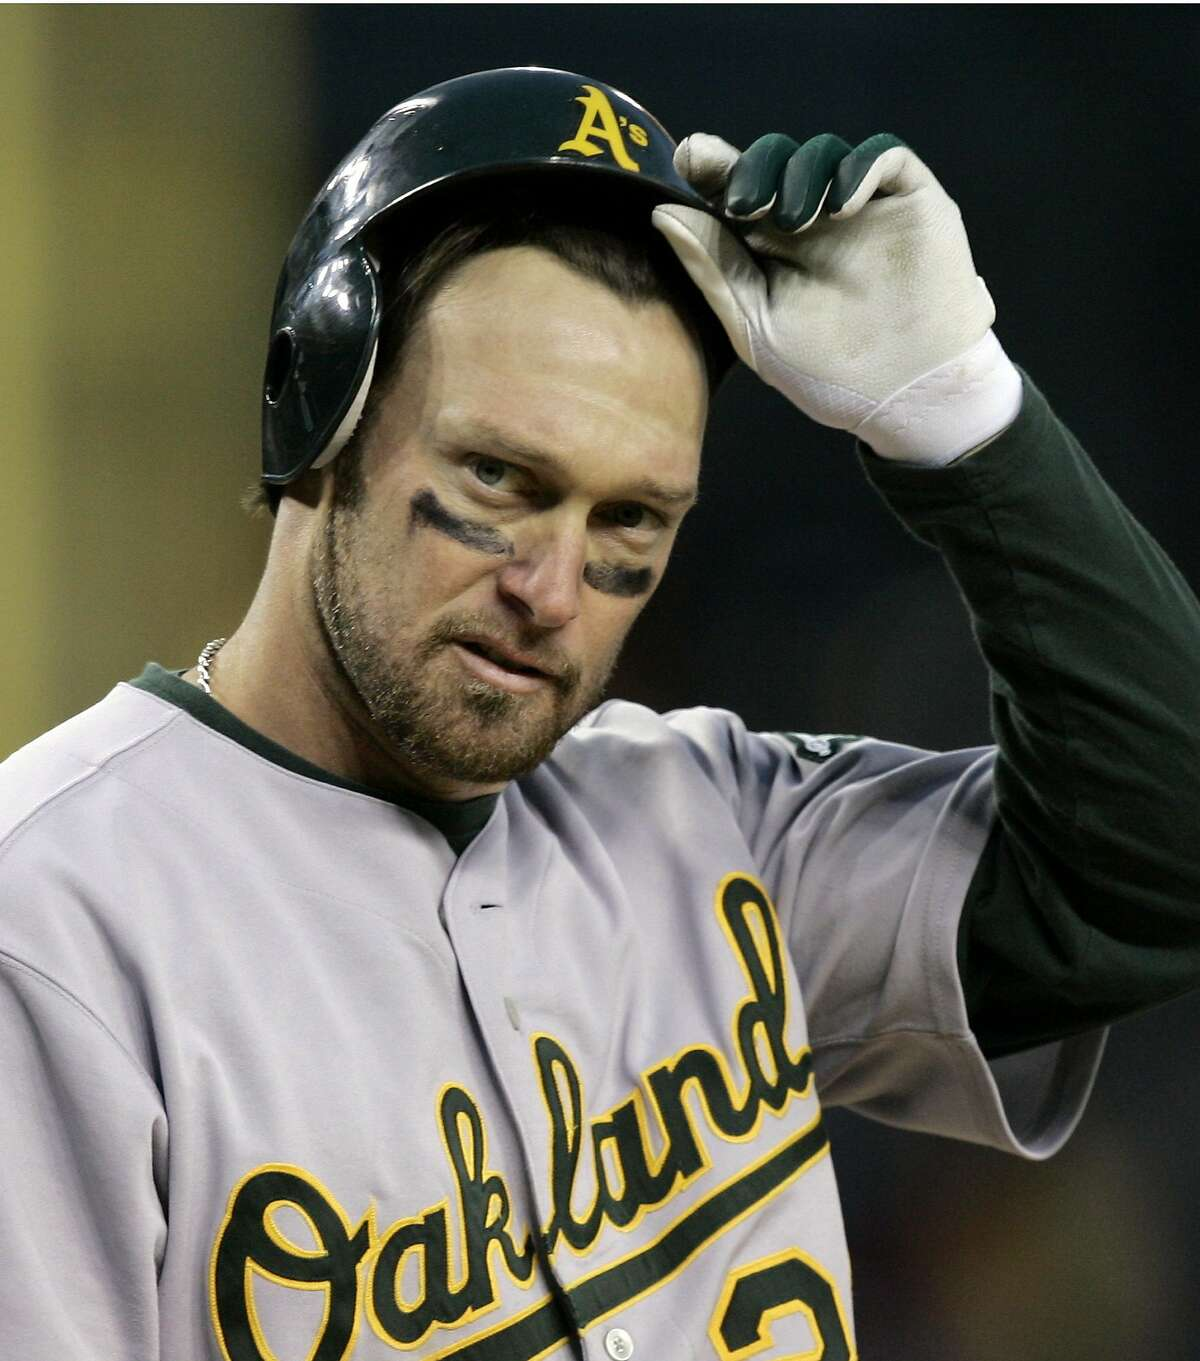 Oakland Athletics' Mark Kotsay takes off his helmet after striking out in the seventh inning leaving one man on in Game 4 of the American League Championship Series in Detroit, Saturday, Oct. 14, 2006.